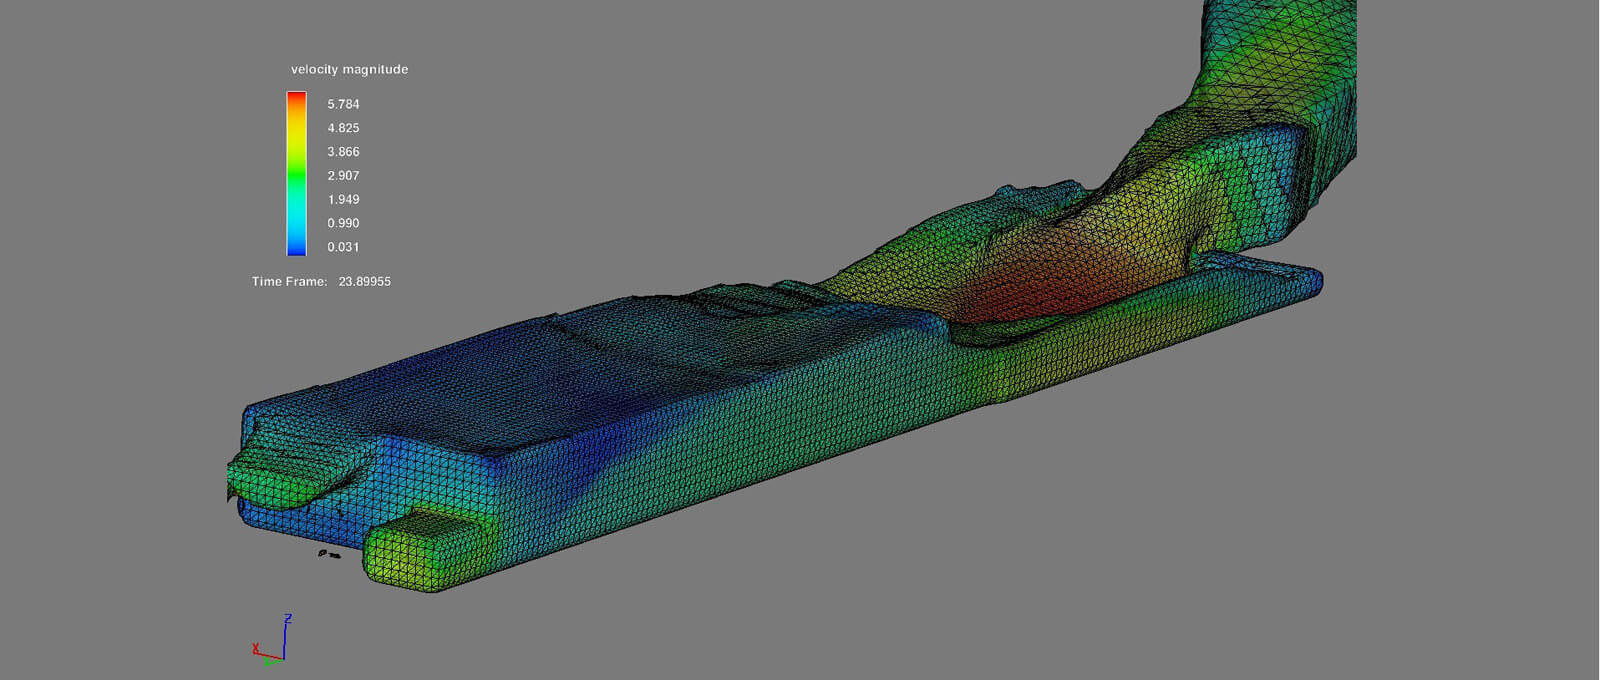 Canals and Weirs - Complex simulations of 3D Flow